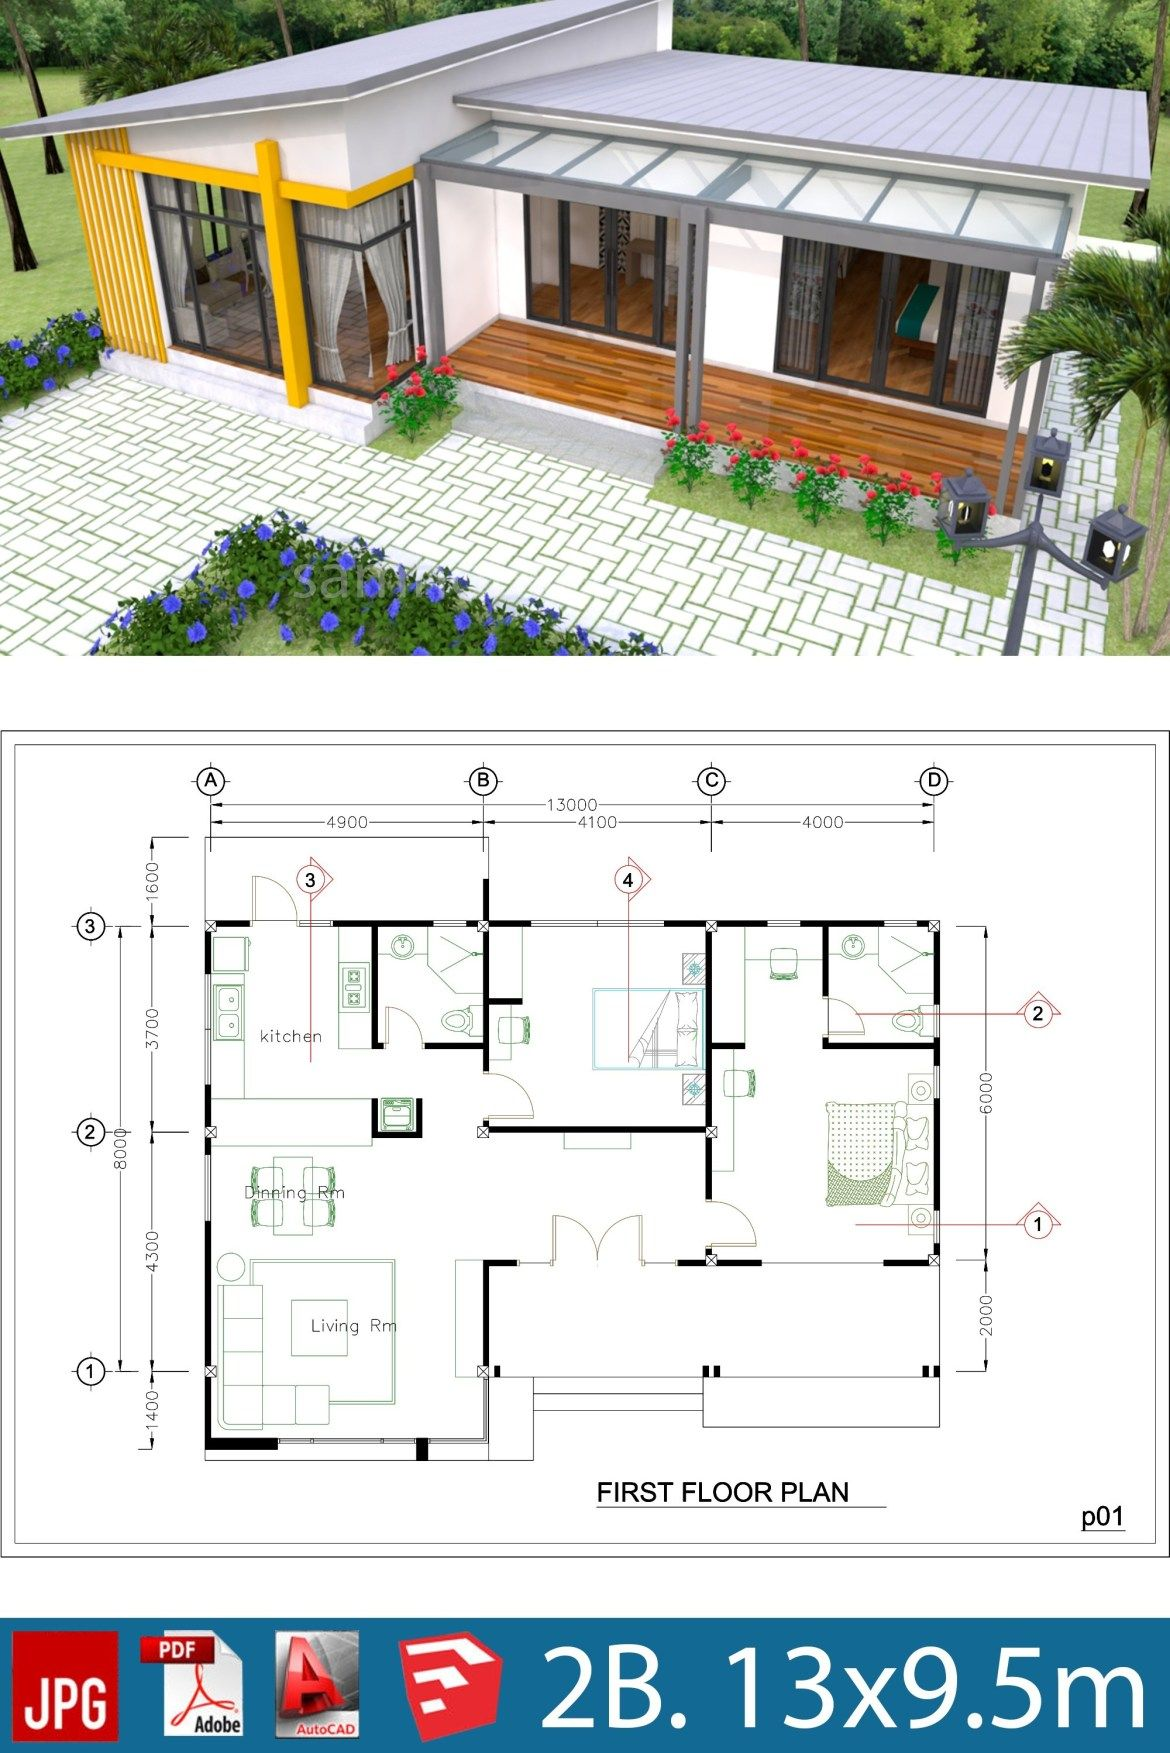 Plan 3d Interior Design House Plans 13x9 5m Full Plan 3beds Samphoas Plansearch House Front Design Small House Design Modern House Plans